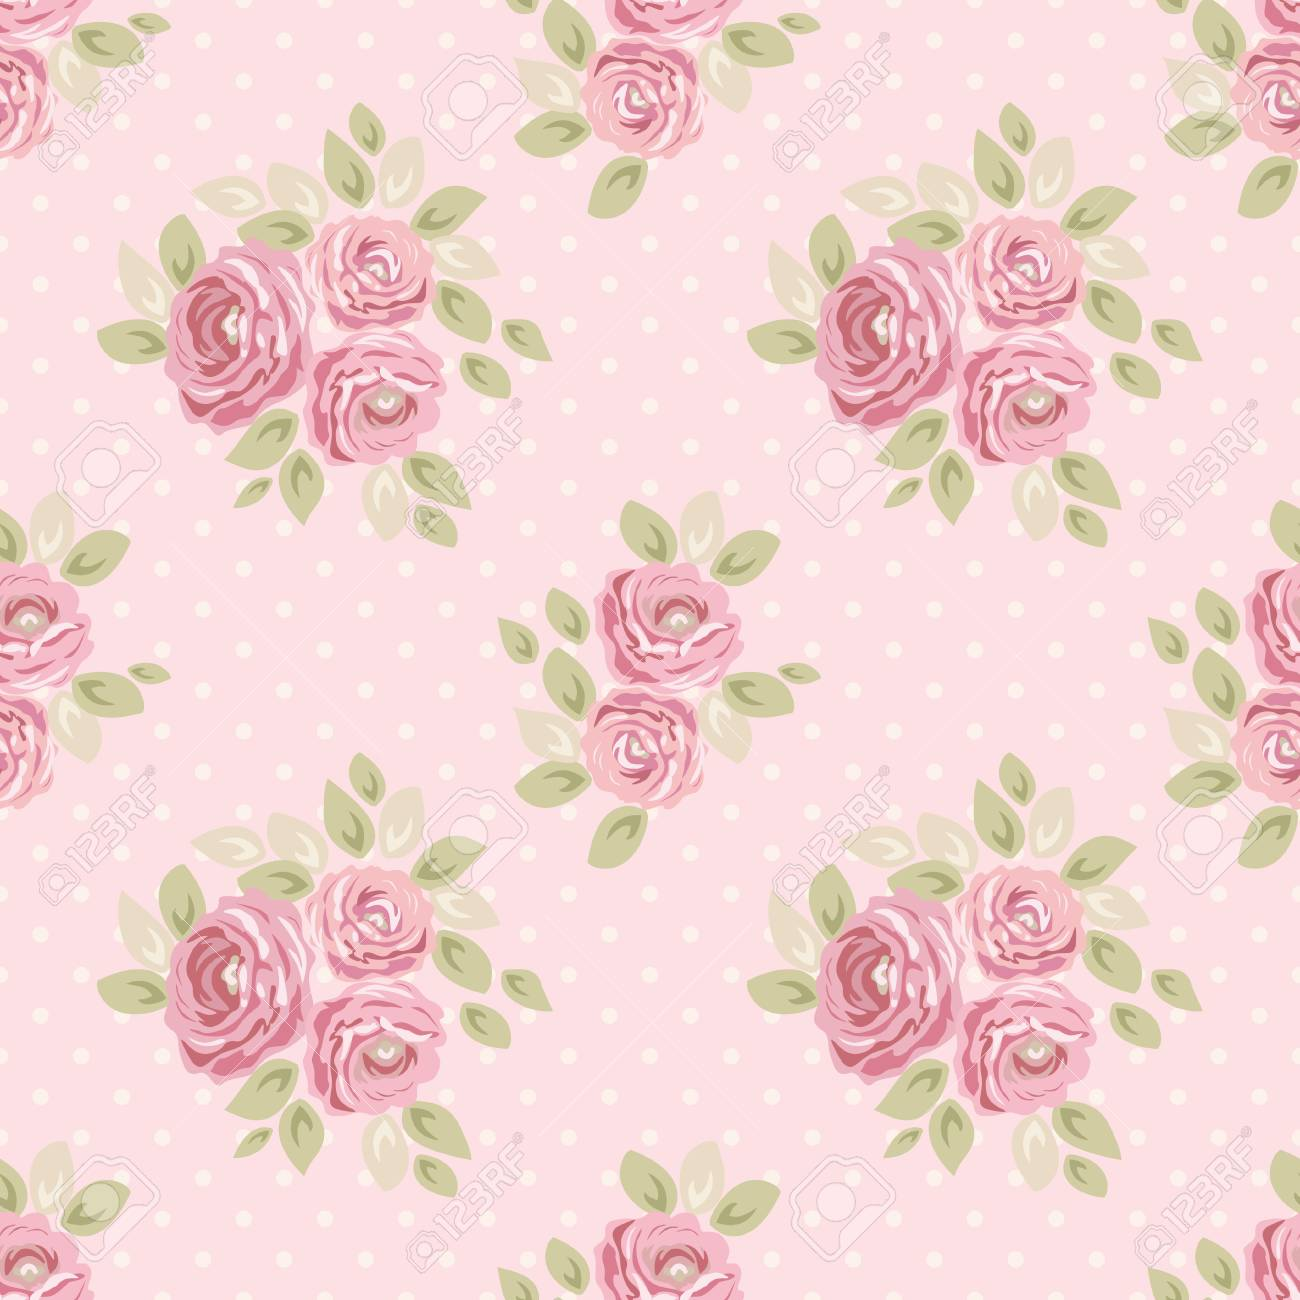 Cute Vintage Seamless Shabby Chic Floral Pattern For Your